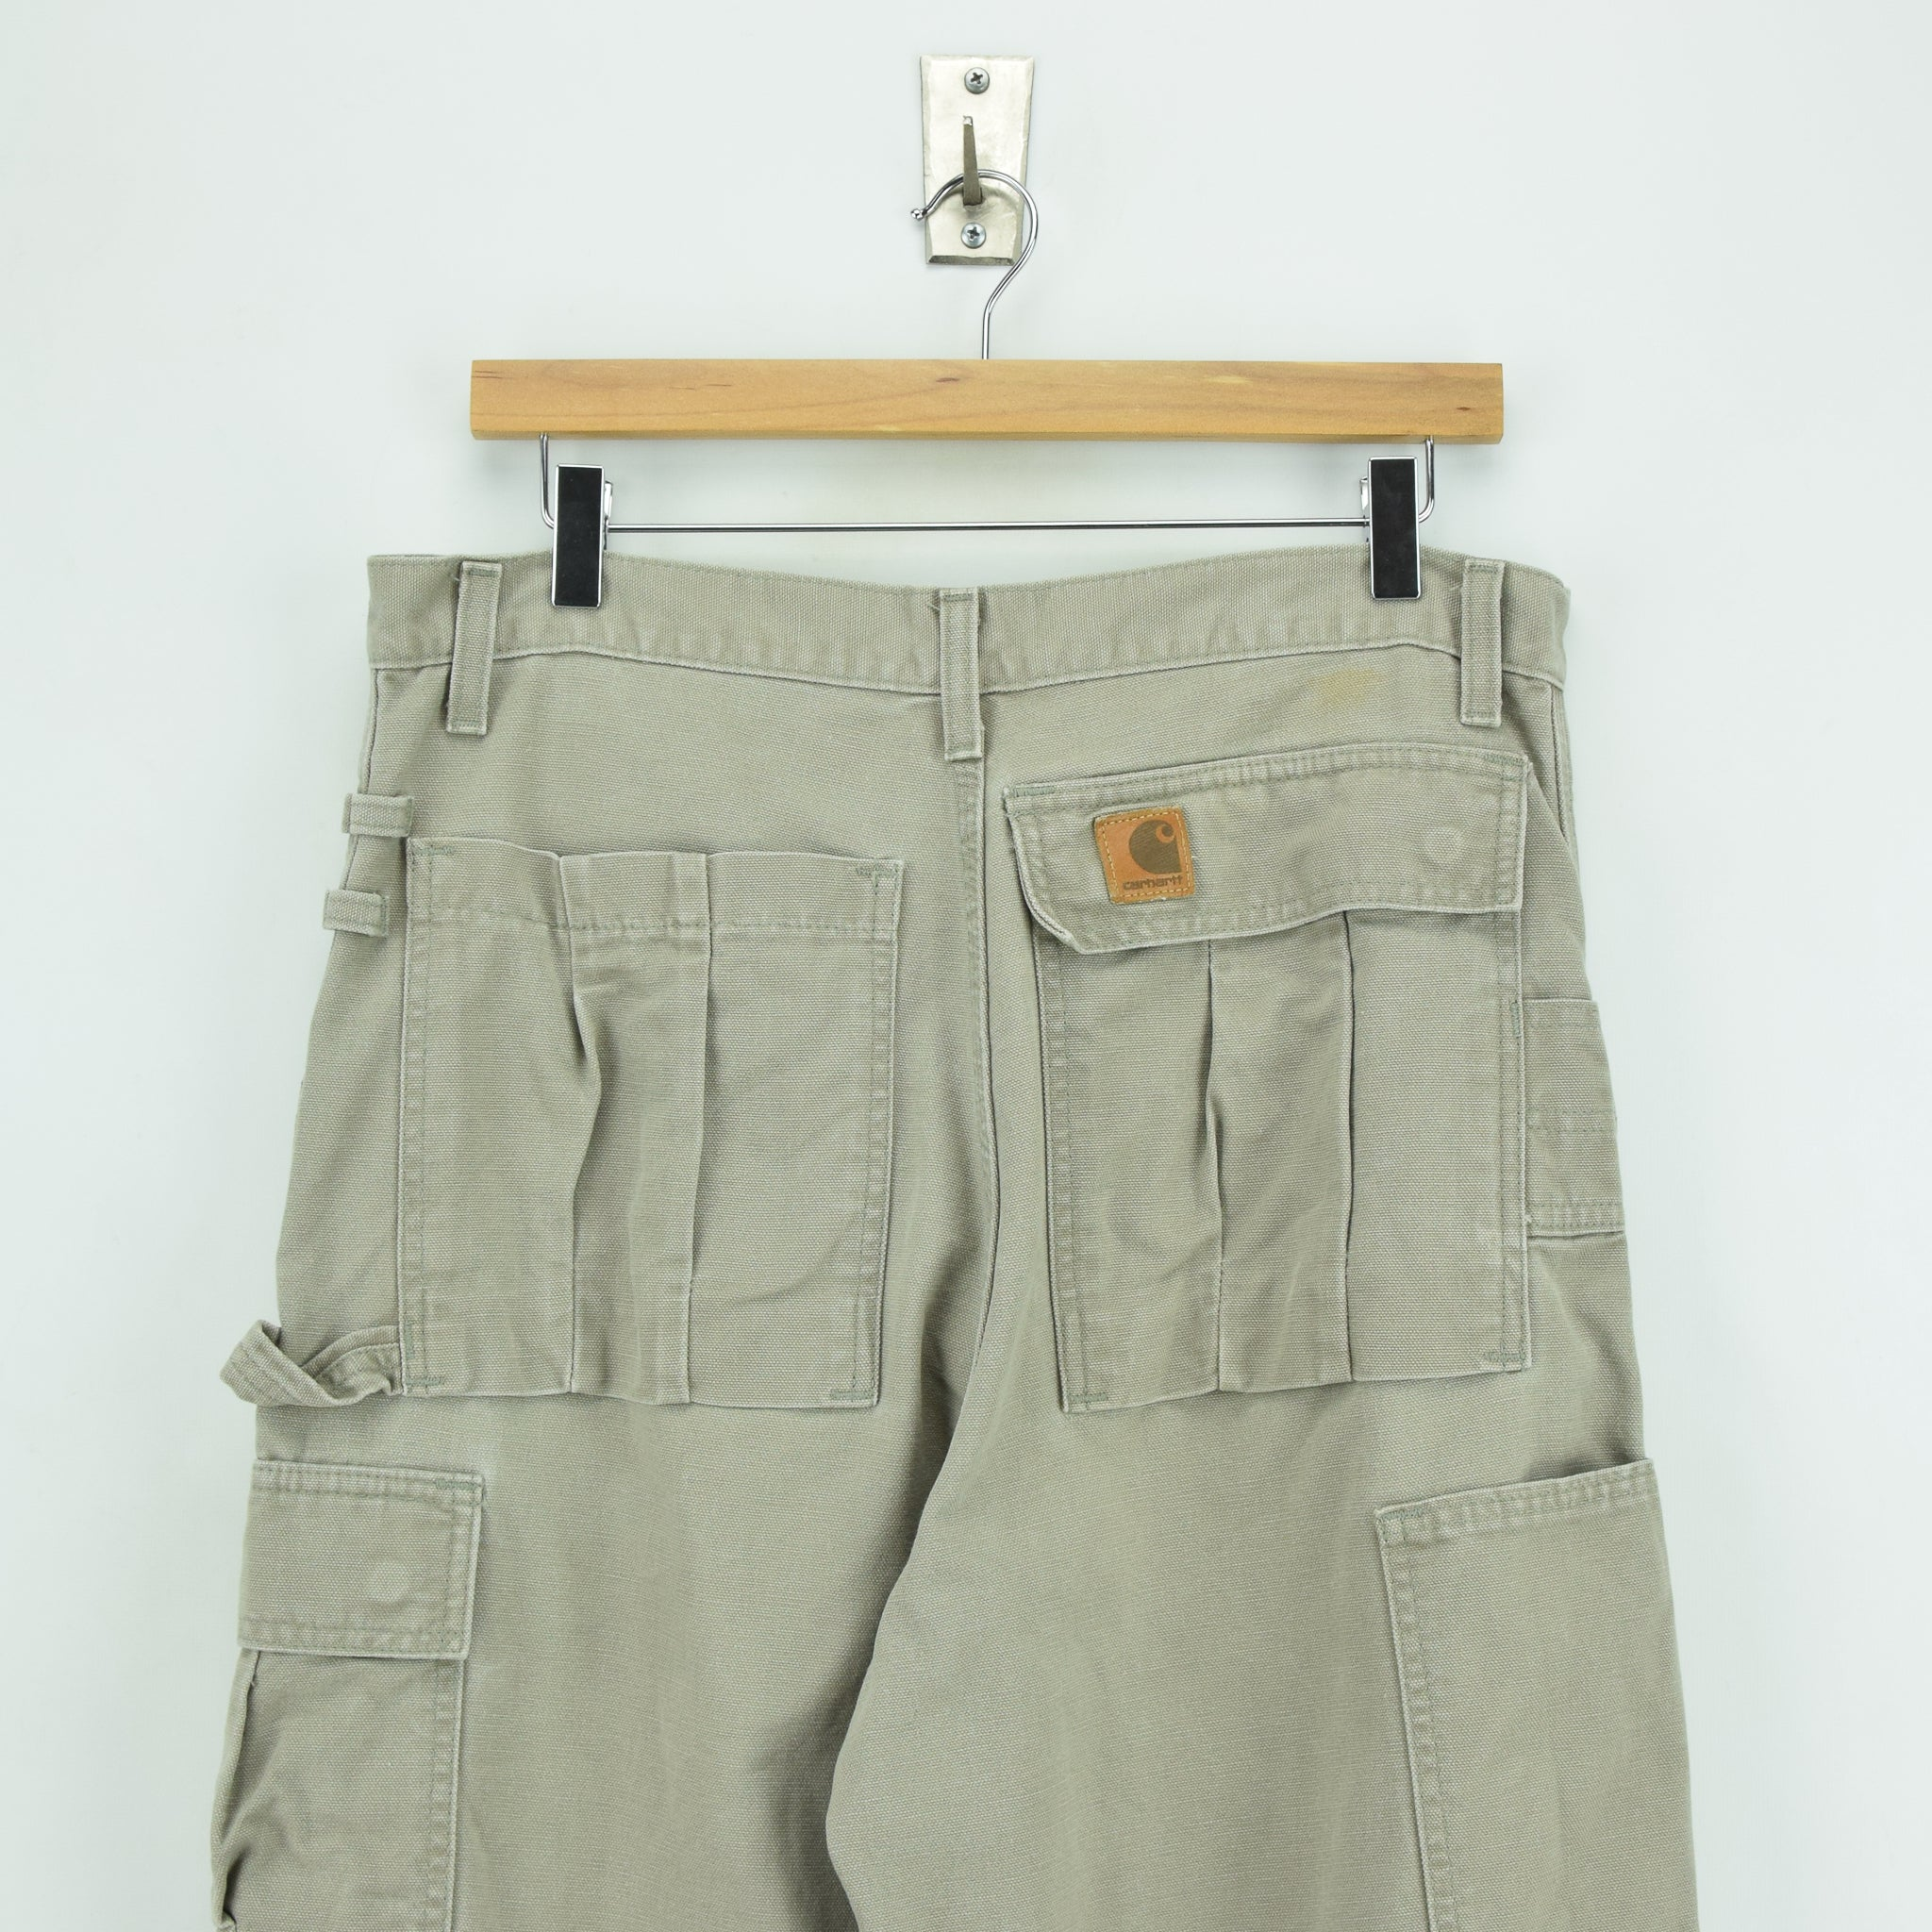 Vintage Carhartt Stone Duck Canvas Utility Work Cargo Pant 32 W 34 L back waist